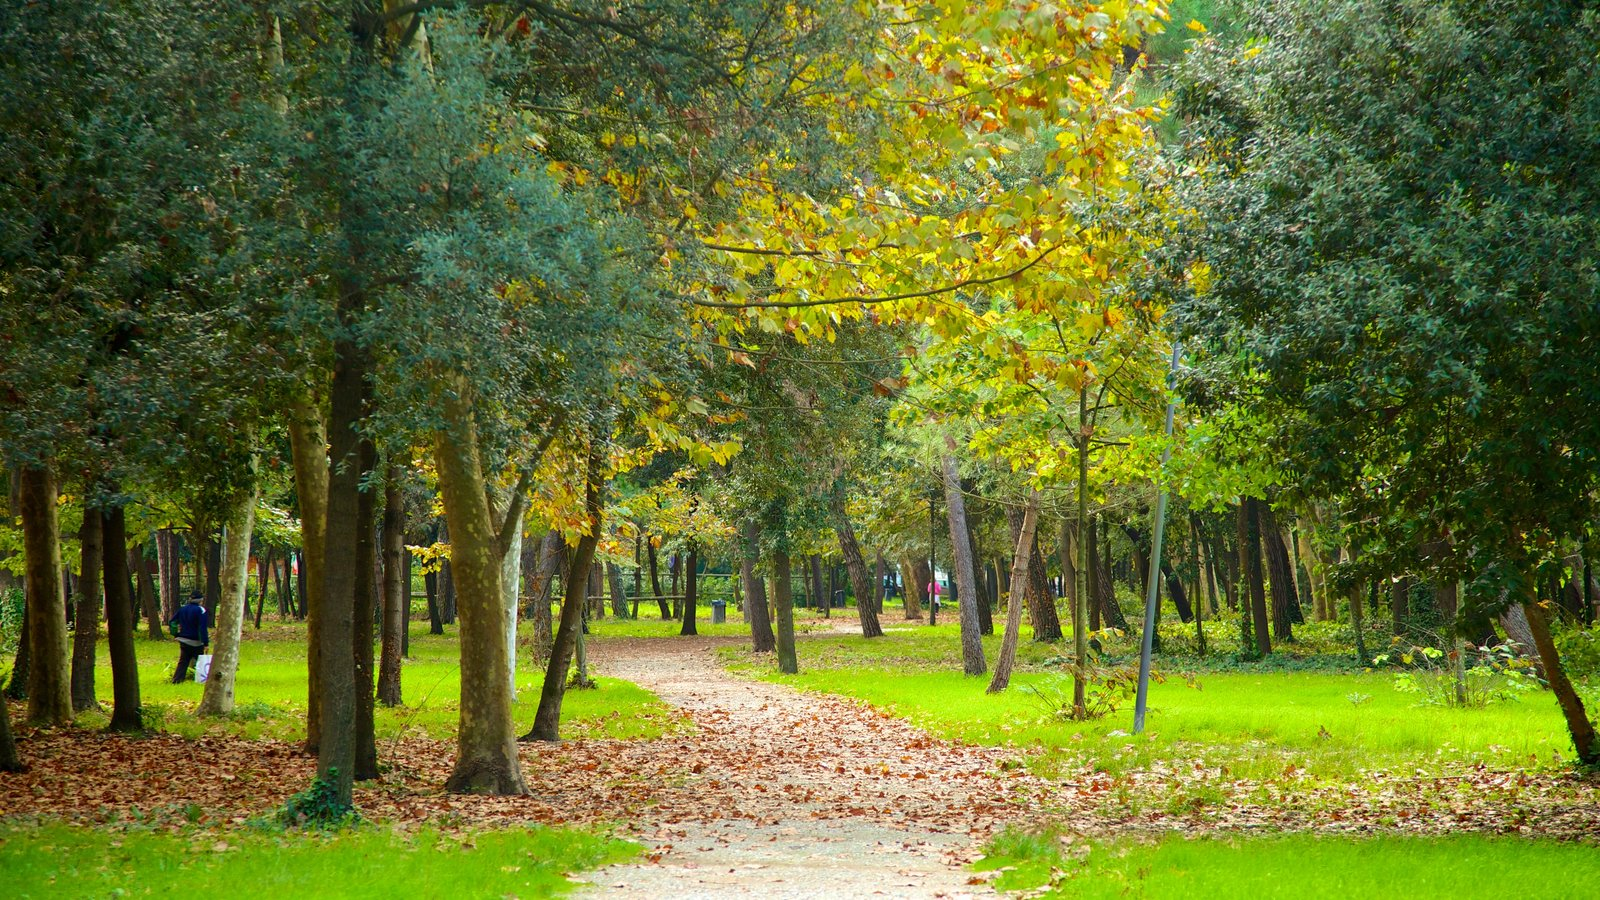 Pineta di Ponente which includes fall colors and a park